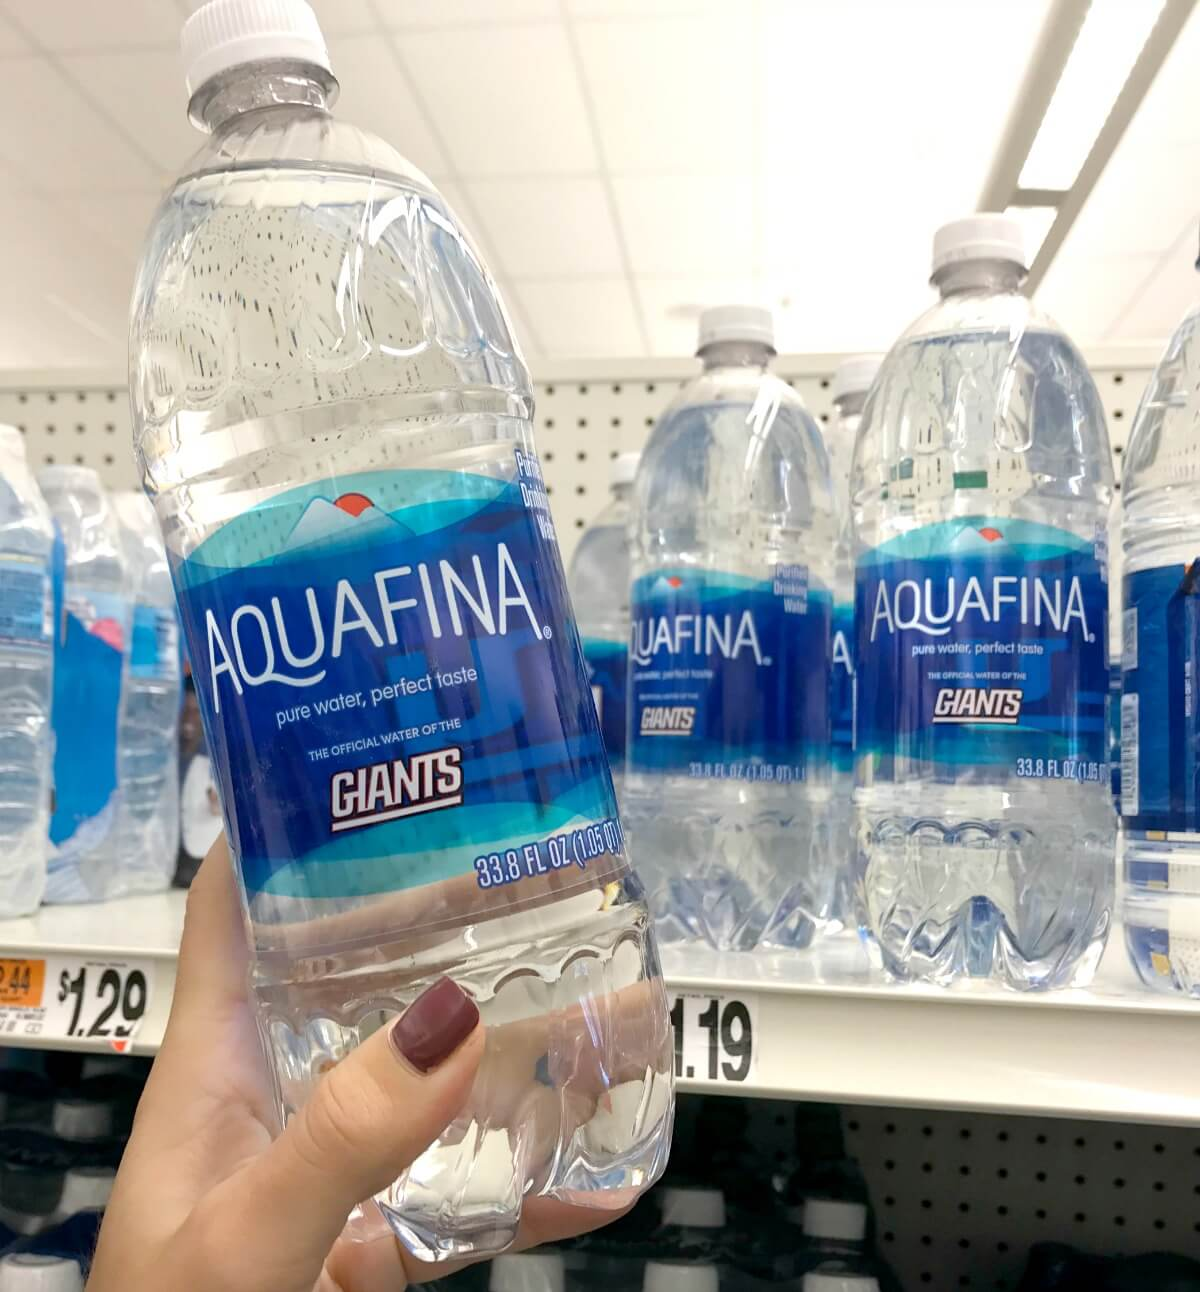 2 In New Aquafina Single Serve Water Coupons 0 99 At